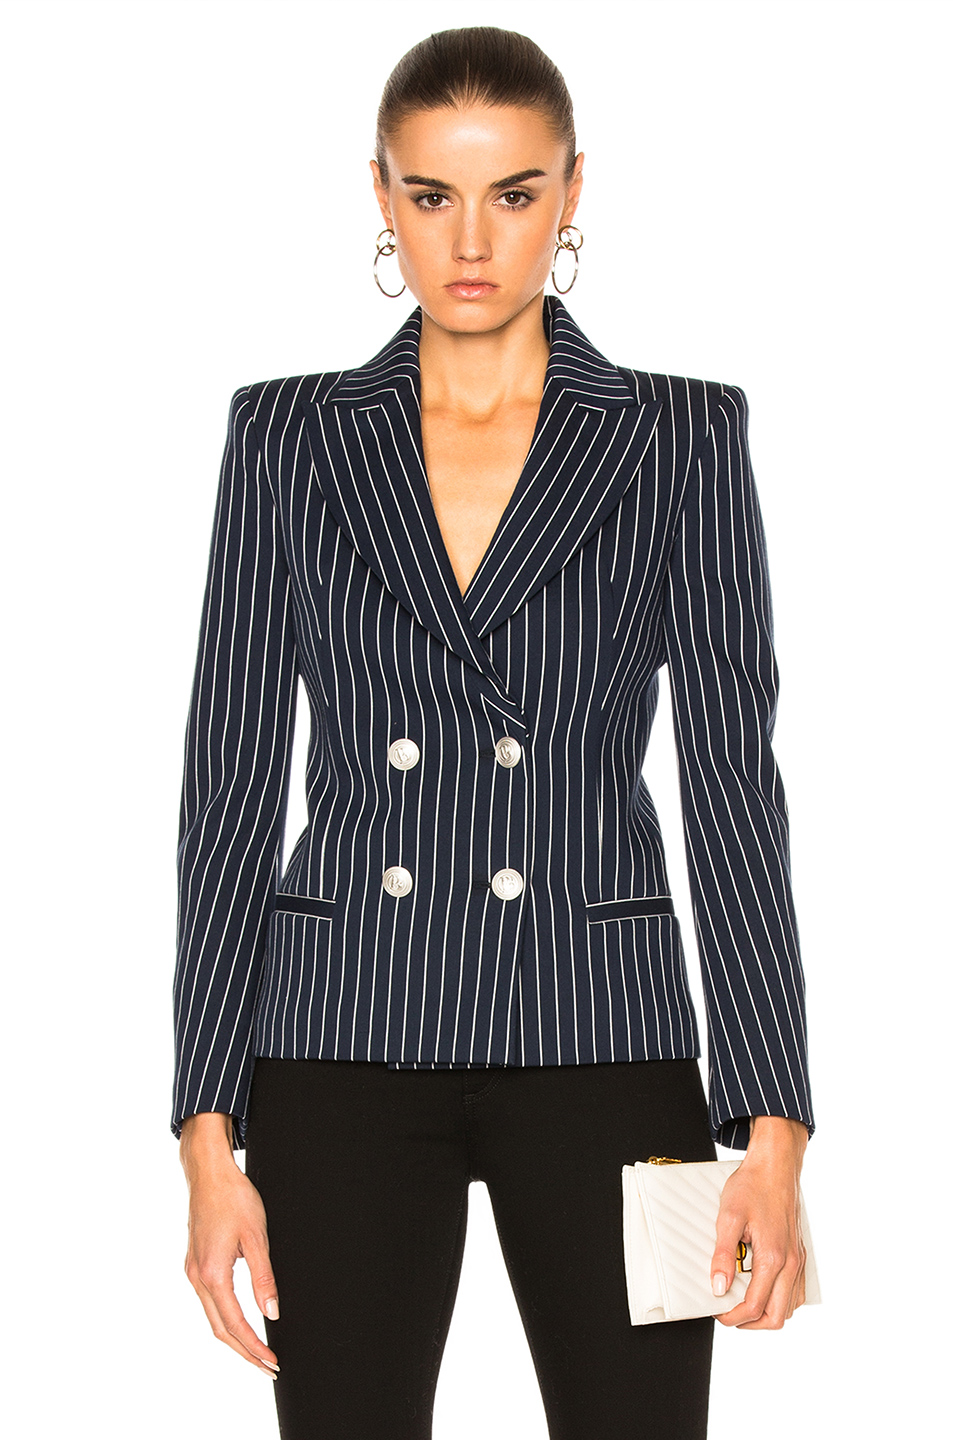 Pierre Balmain Pinstripe Blazer in Stripes